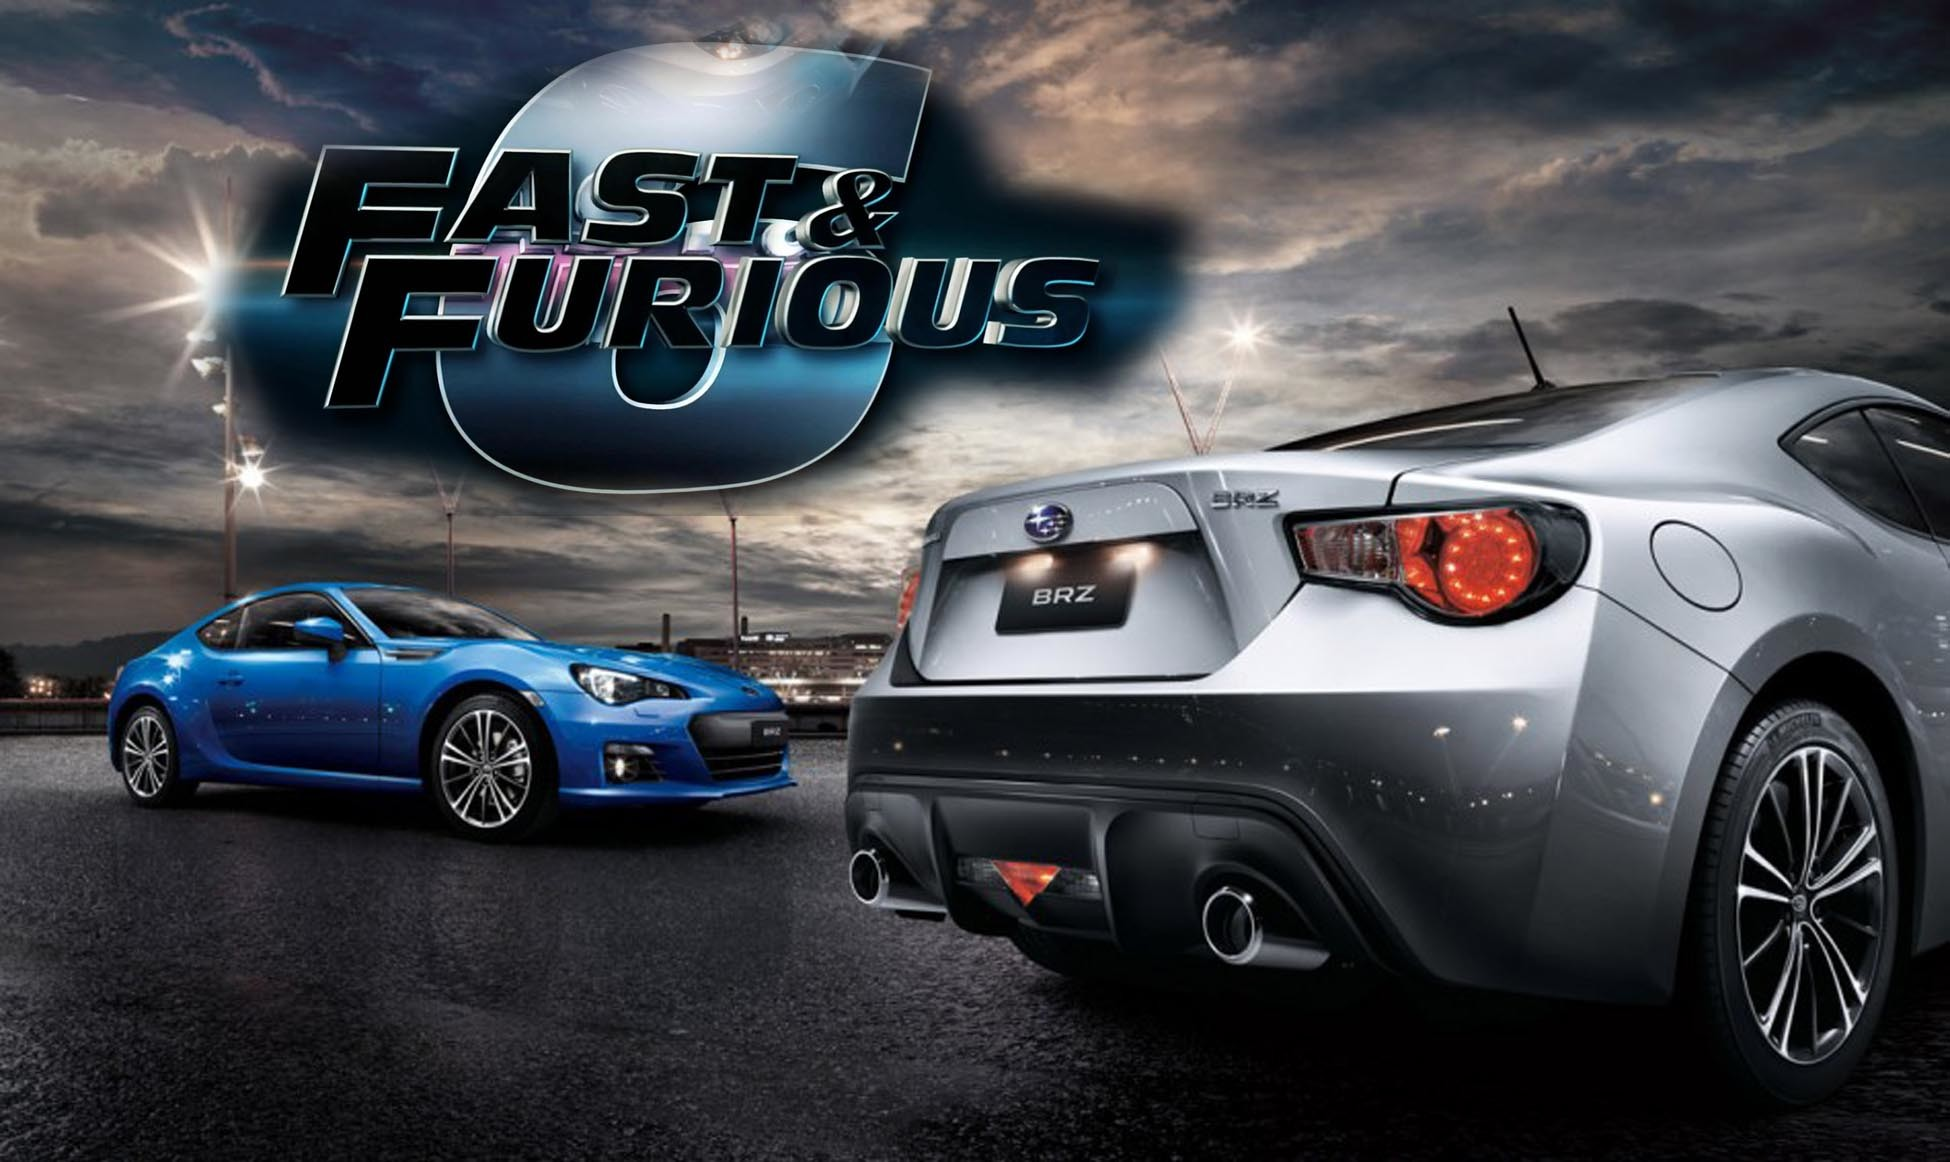 fast furious cars wallpapers 31540poster.png